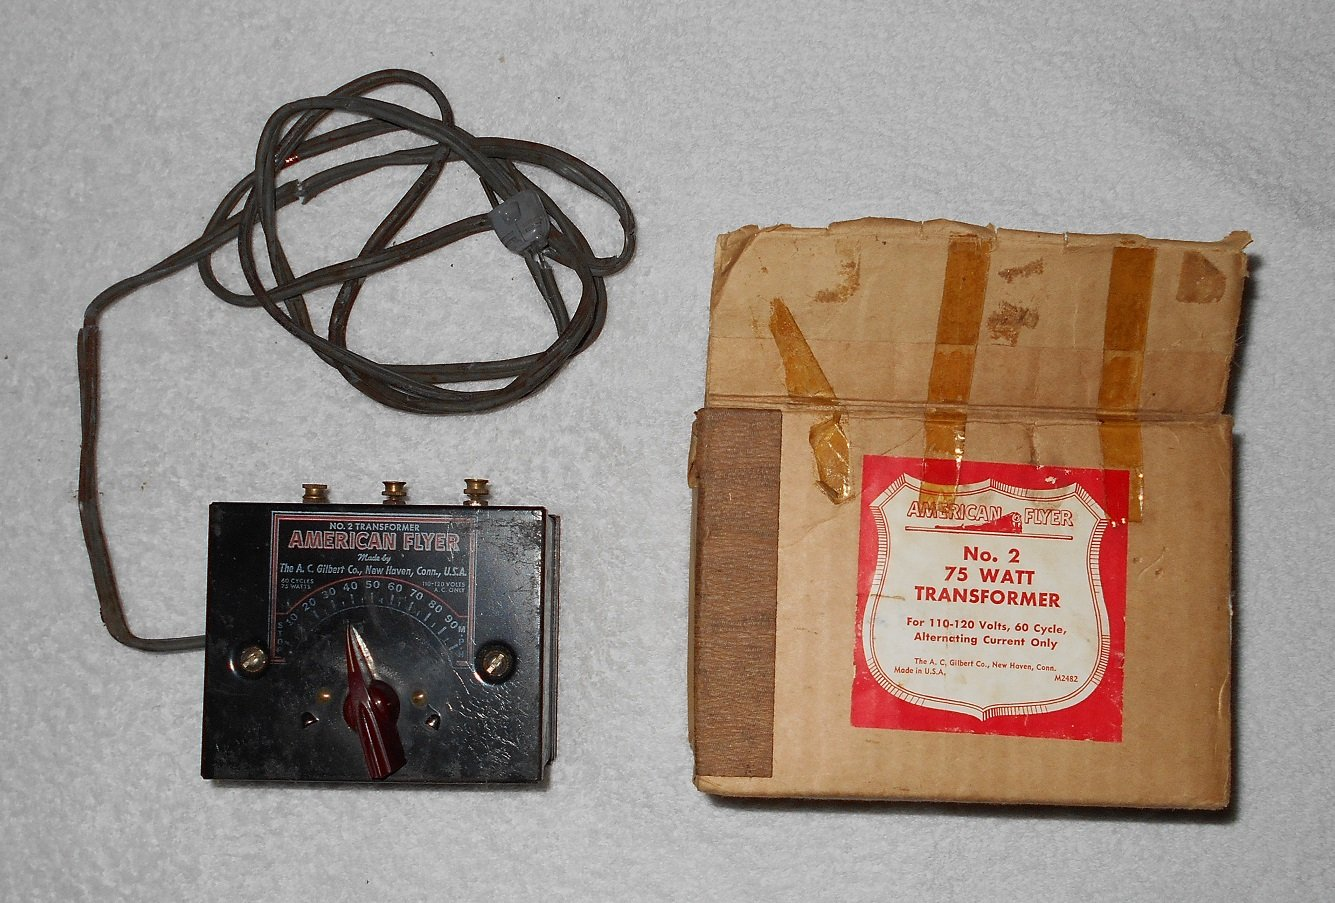 American Flyer - #2 - Transformer - 75 Watt - Includes Original Box - Vintage